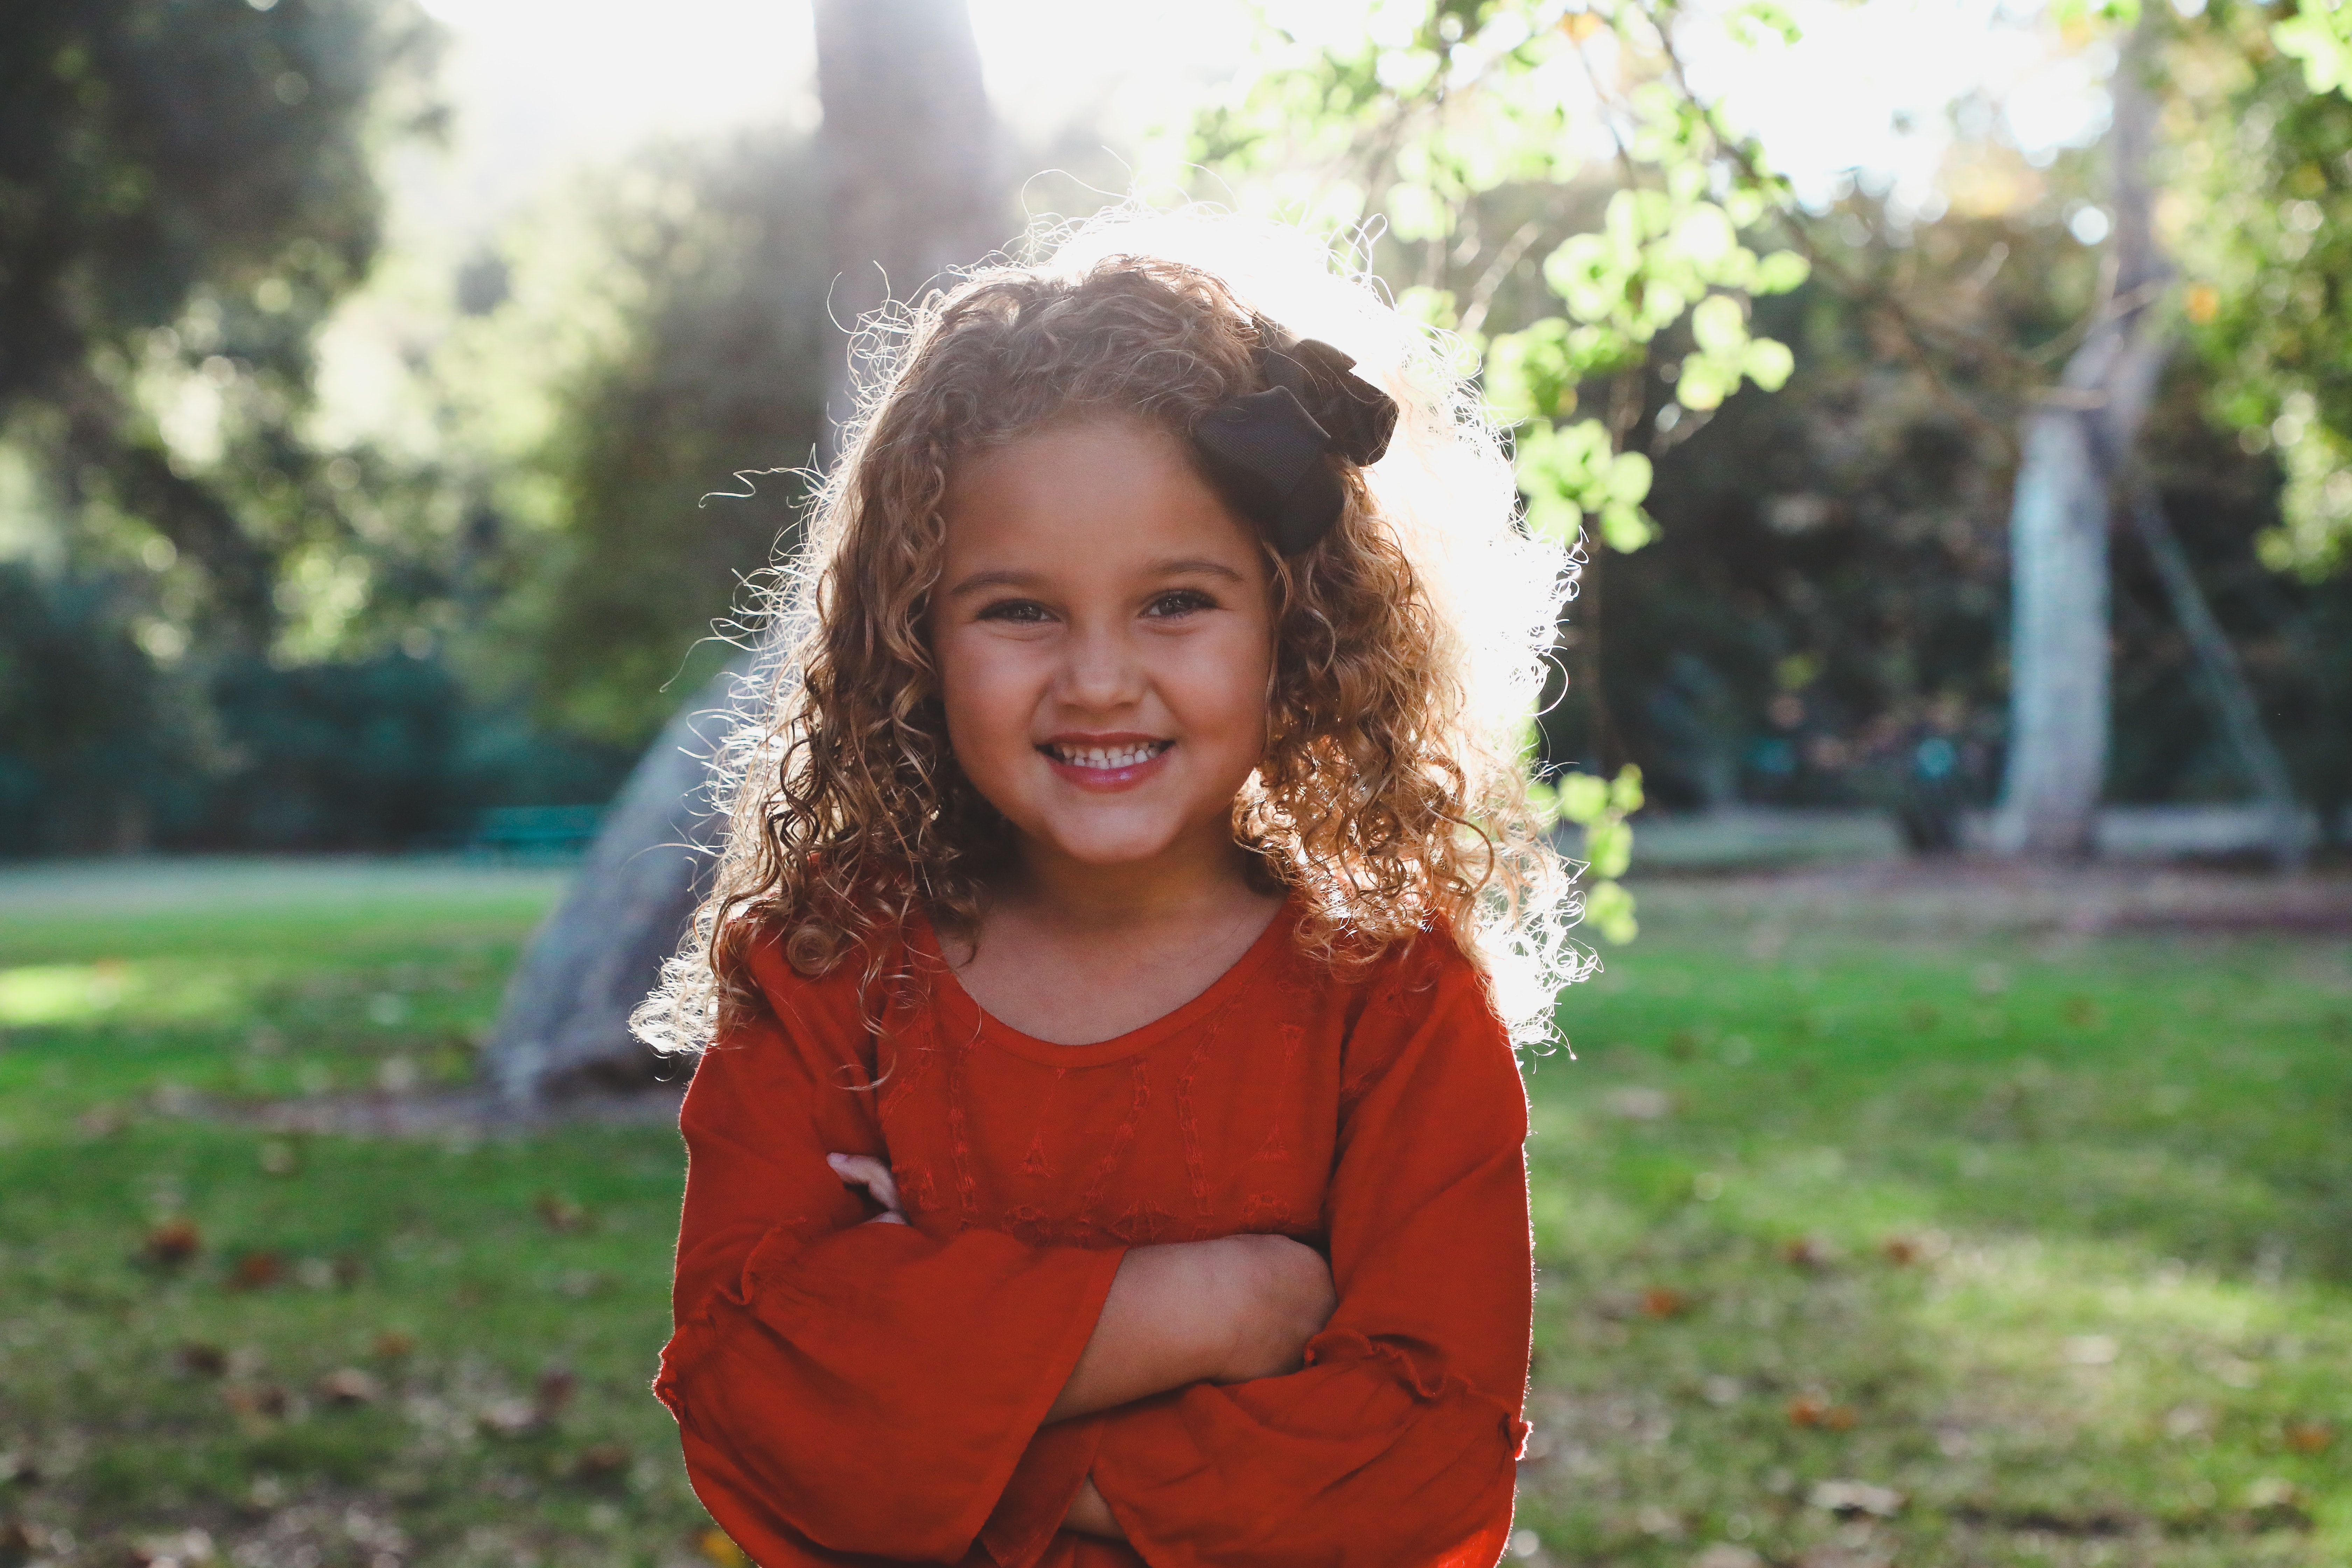 shallow focus photography of girl in red long-sleeved top